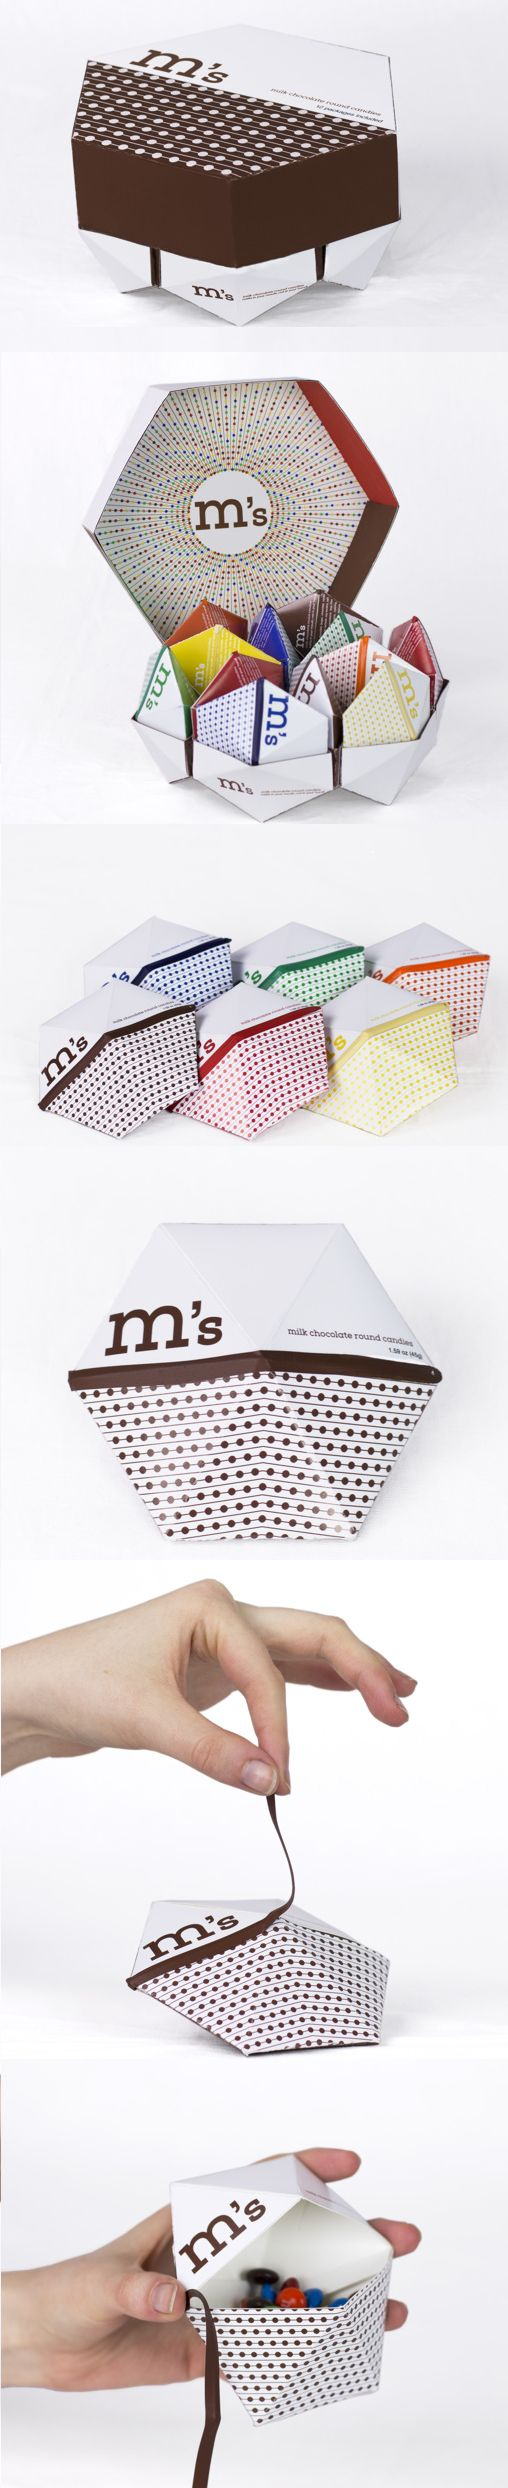 M&M's packaging gets a concept redesign